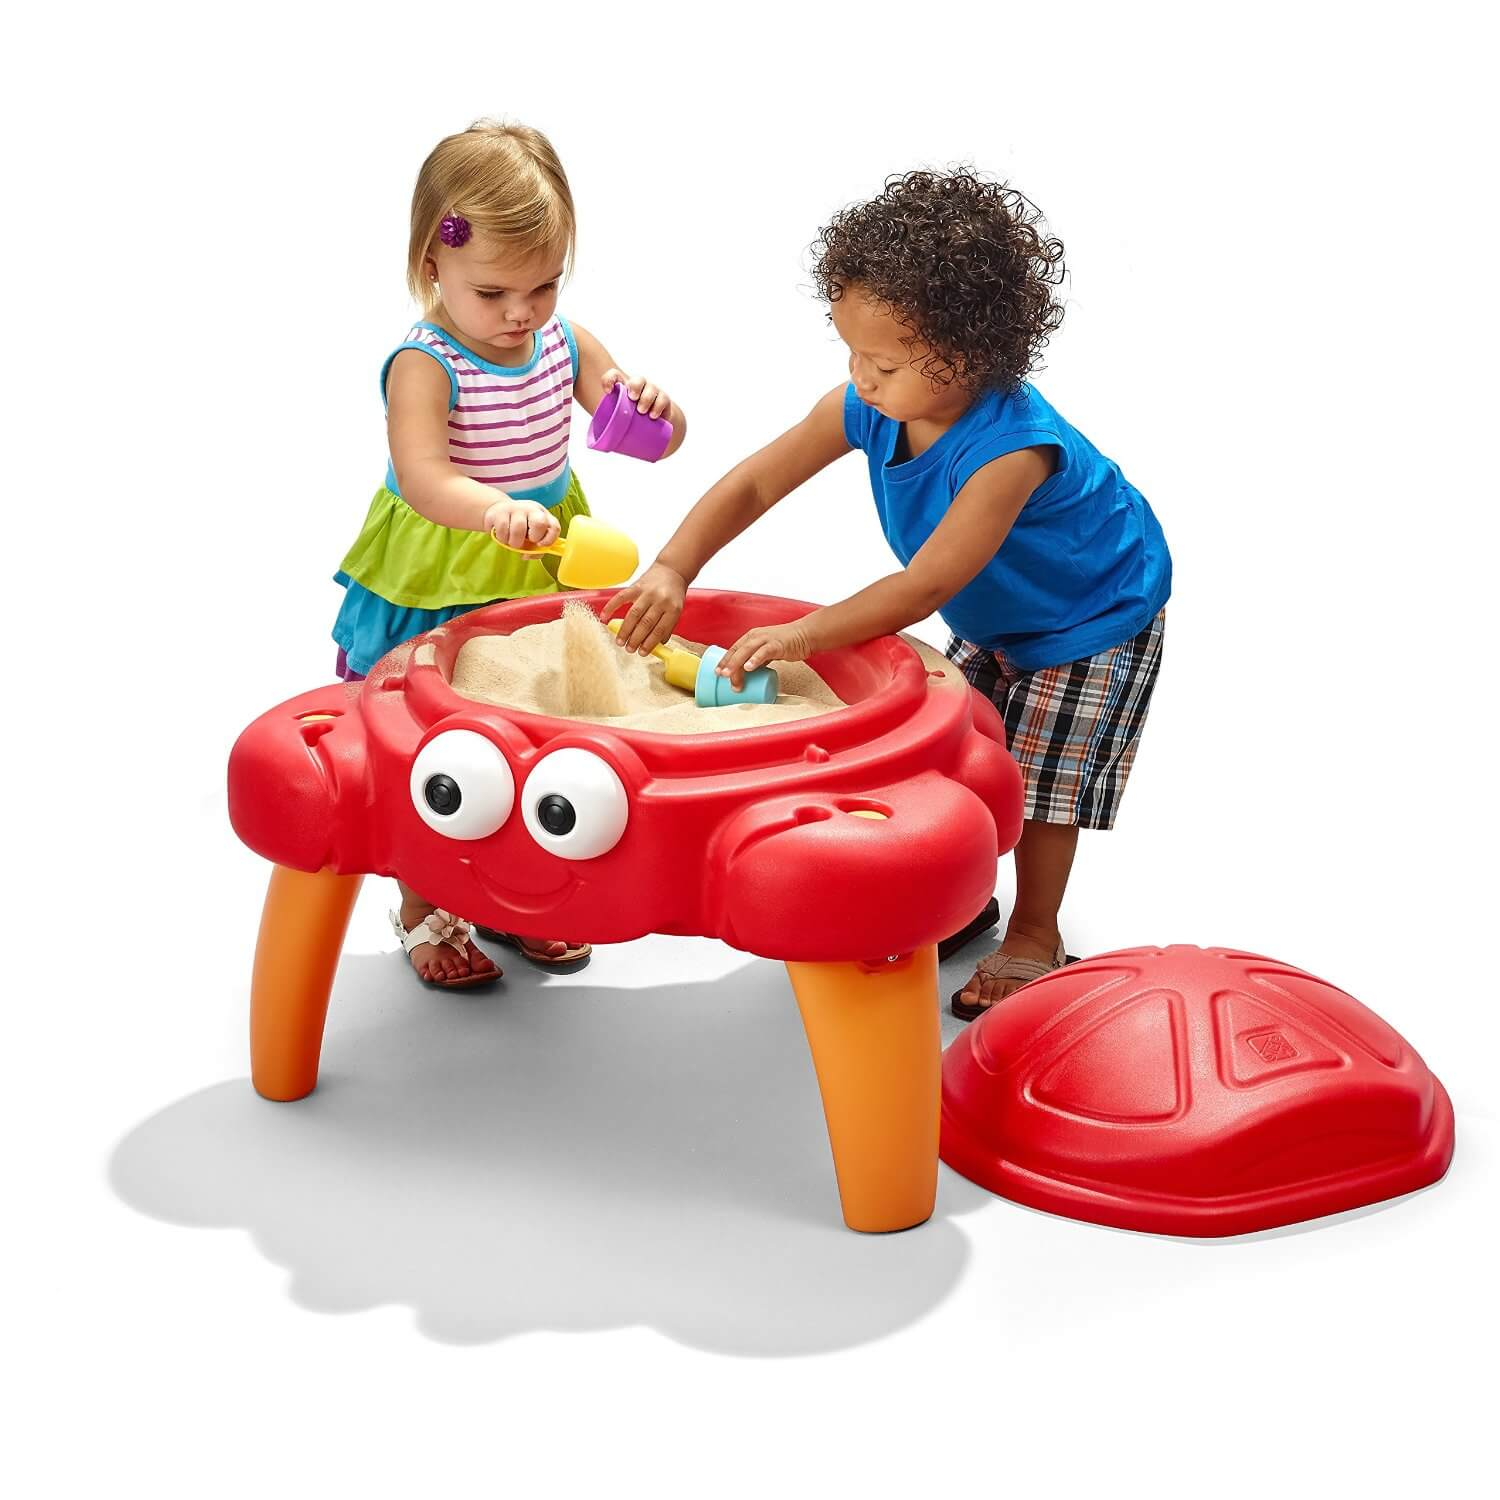 Back Yard Toys For Toddlers : Best outdoor toys for toddlers and kids familyeducation